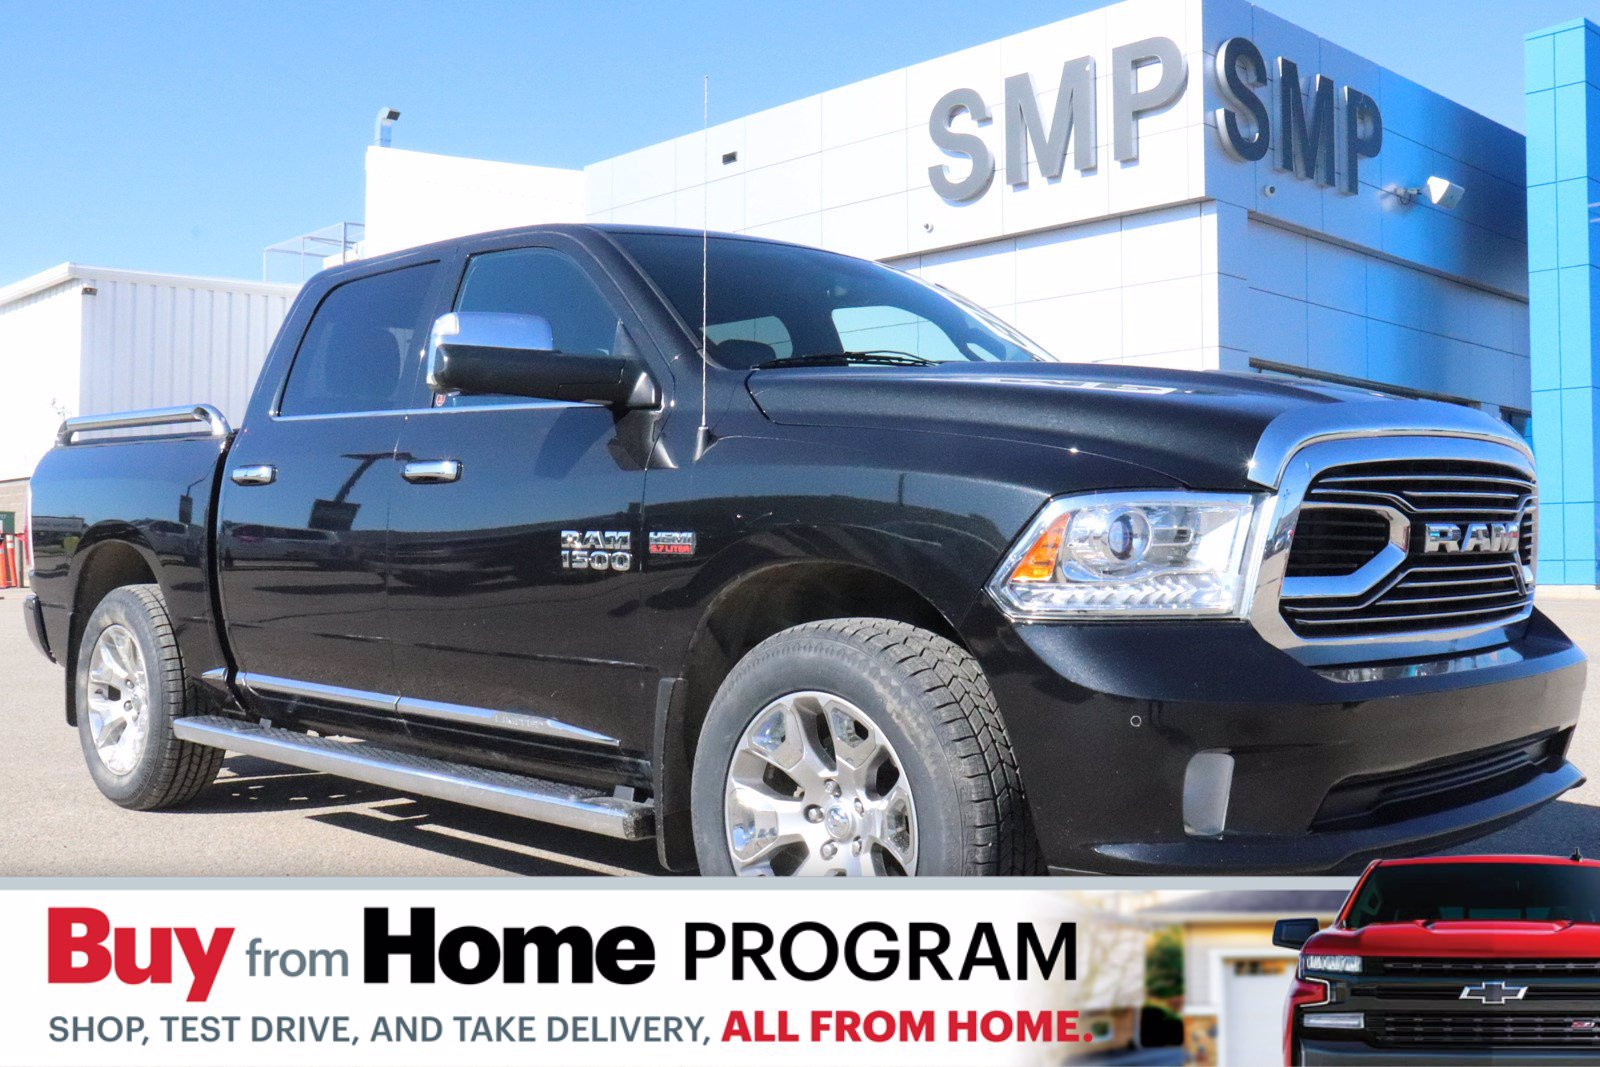 Certified Pre-Owned 2015 Ram 1500 Laramie Limited -Sunroof, Navigation, Remote Start